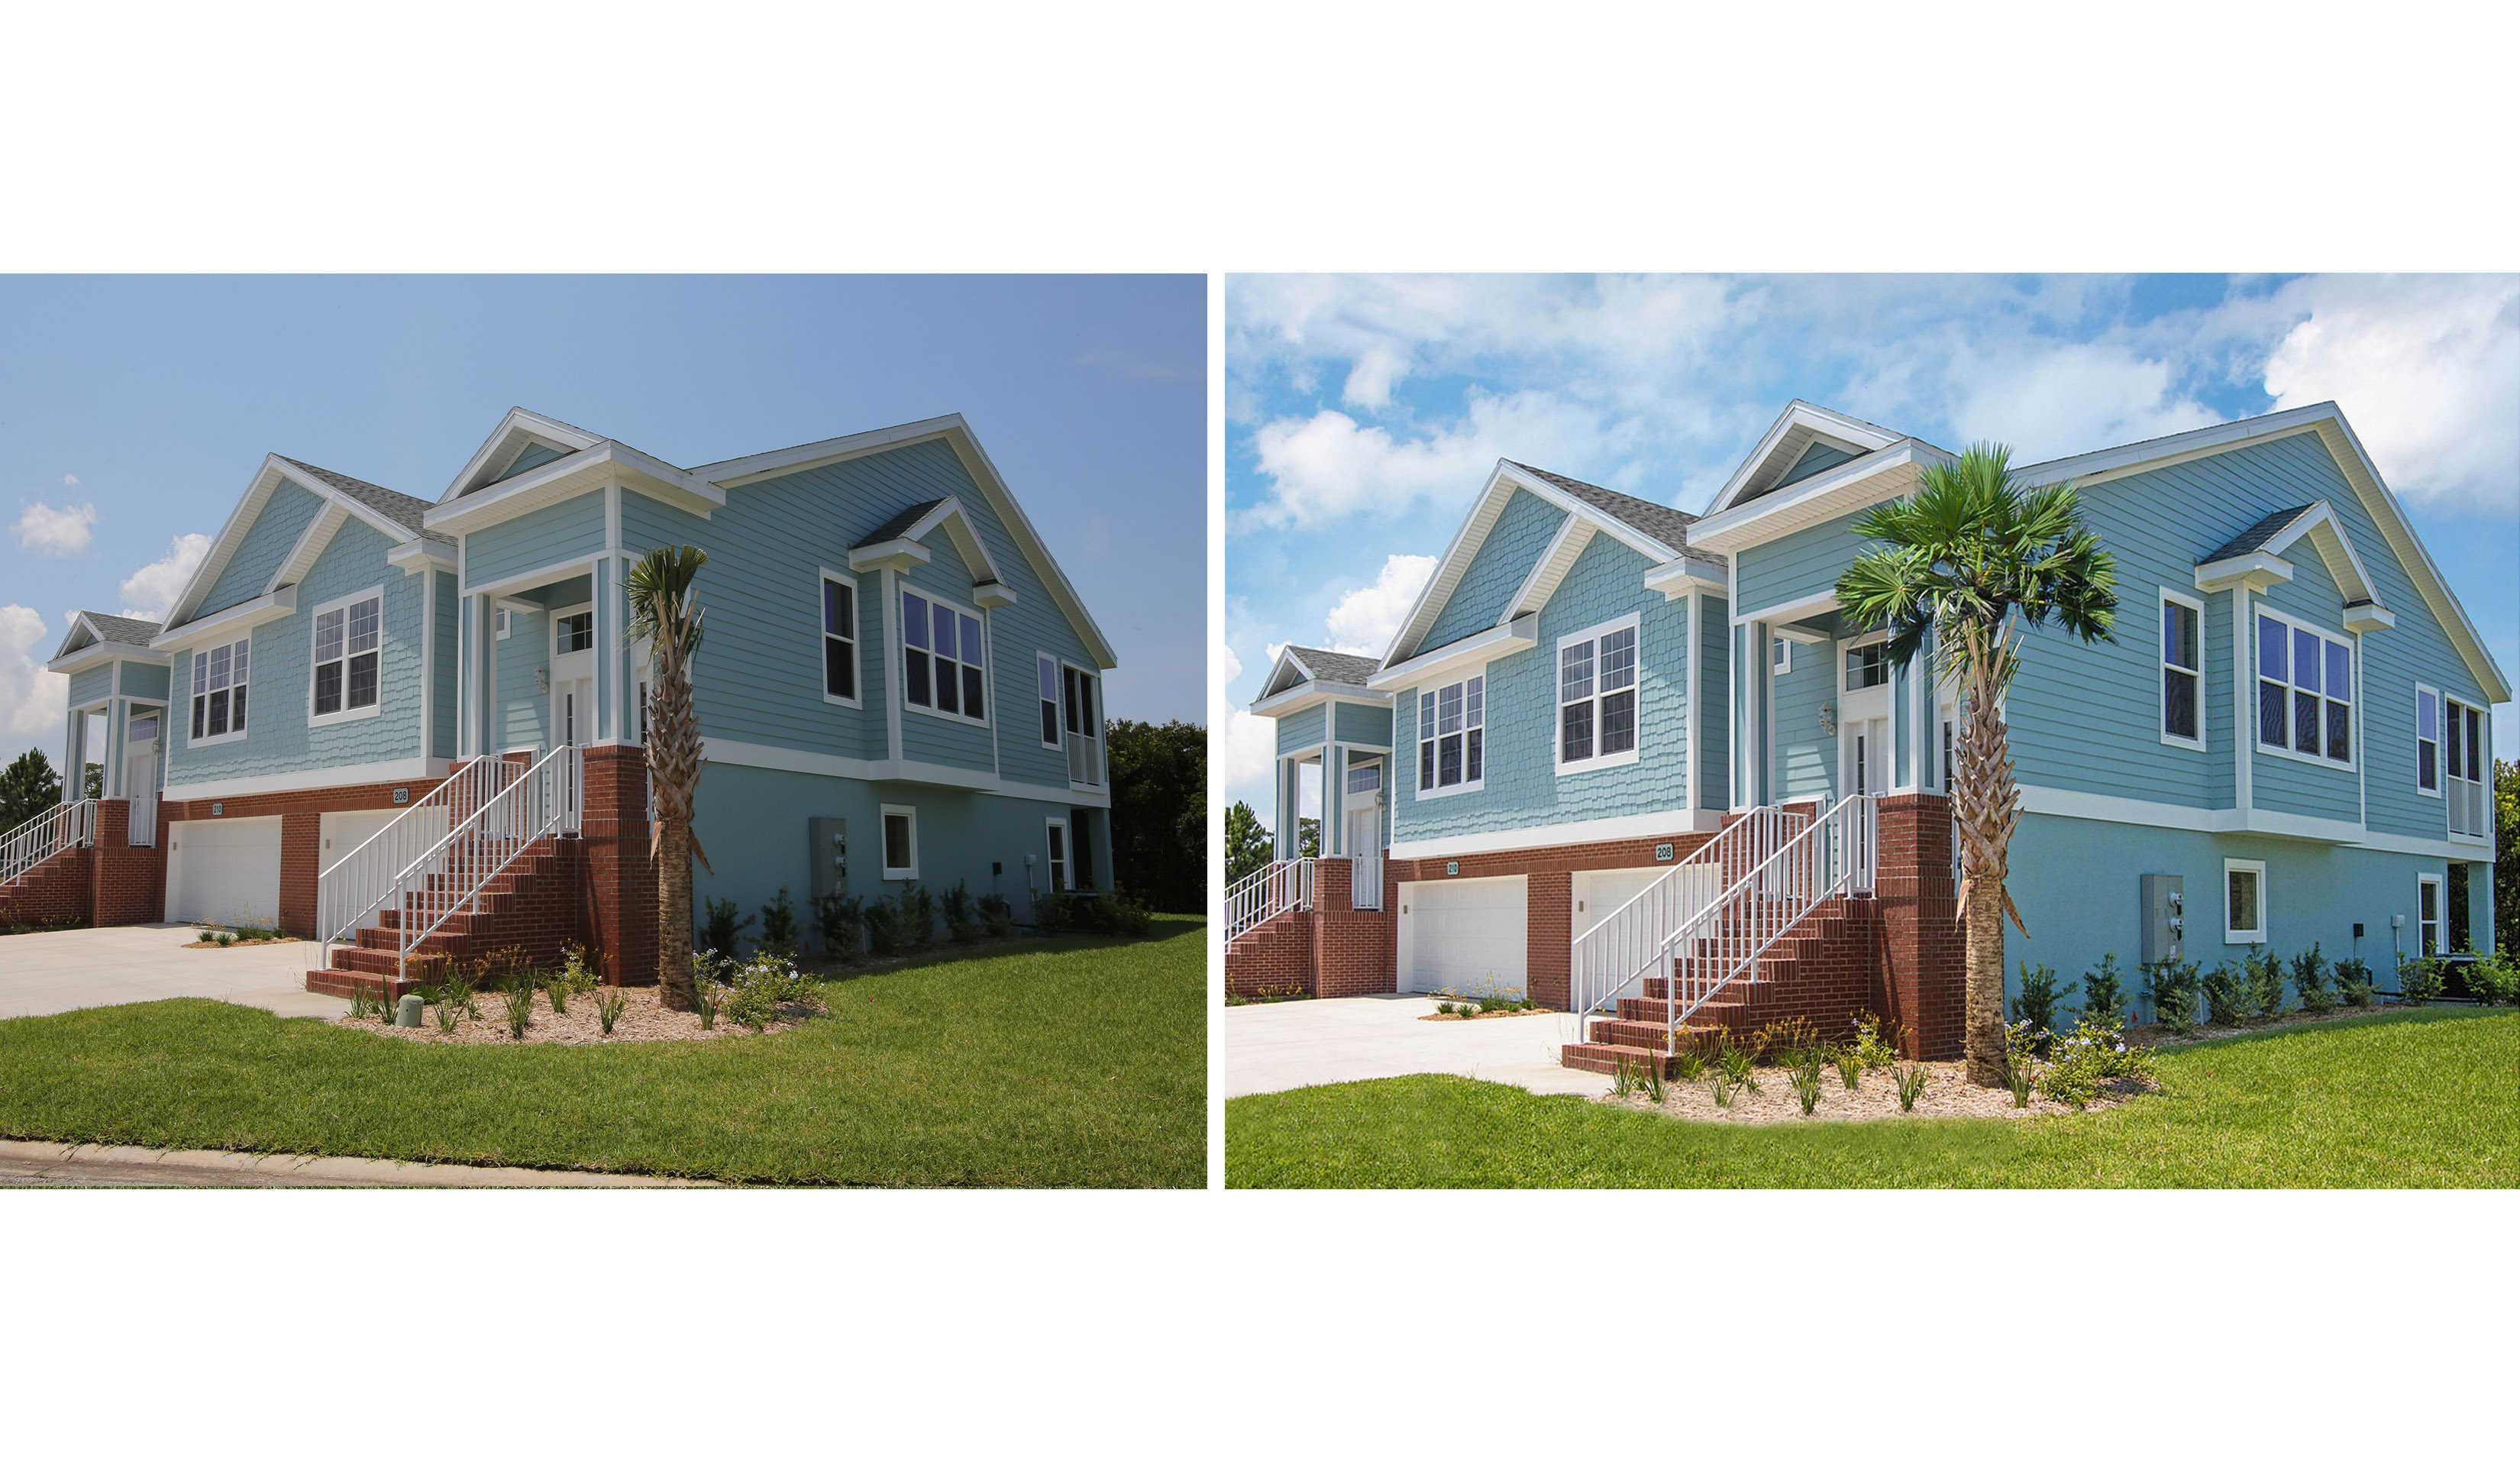 MODEL HOME Before and After